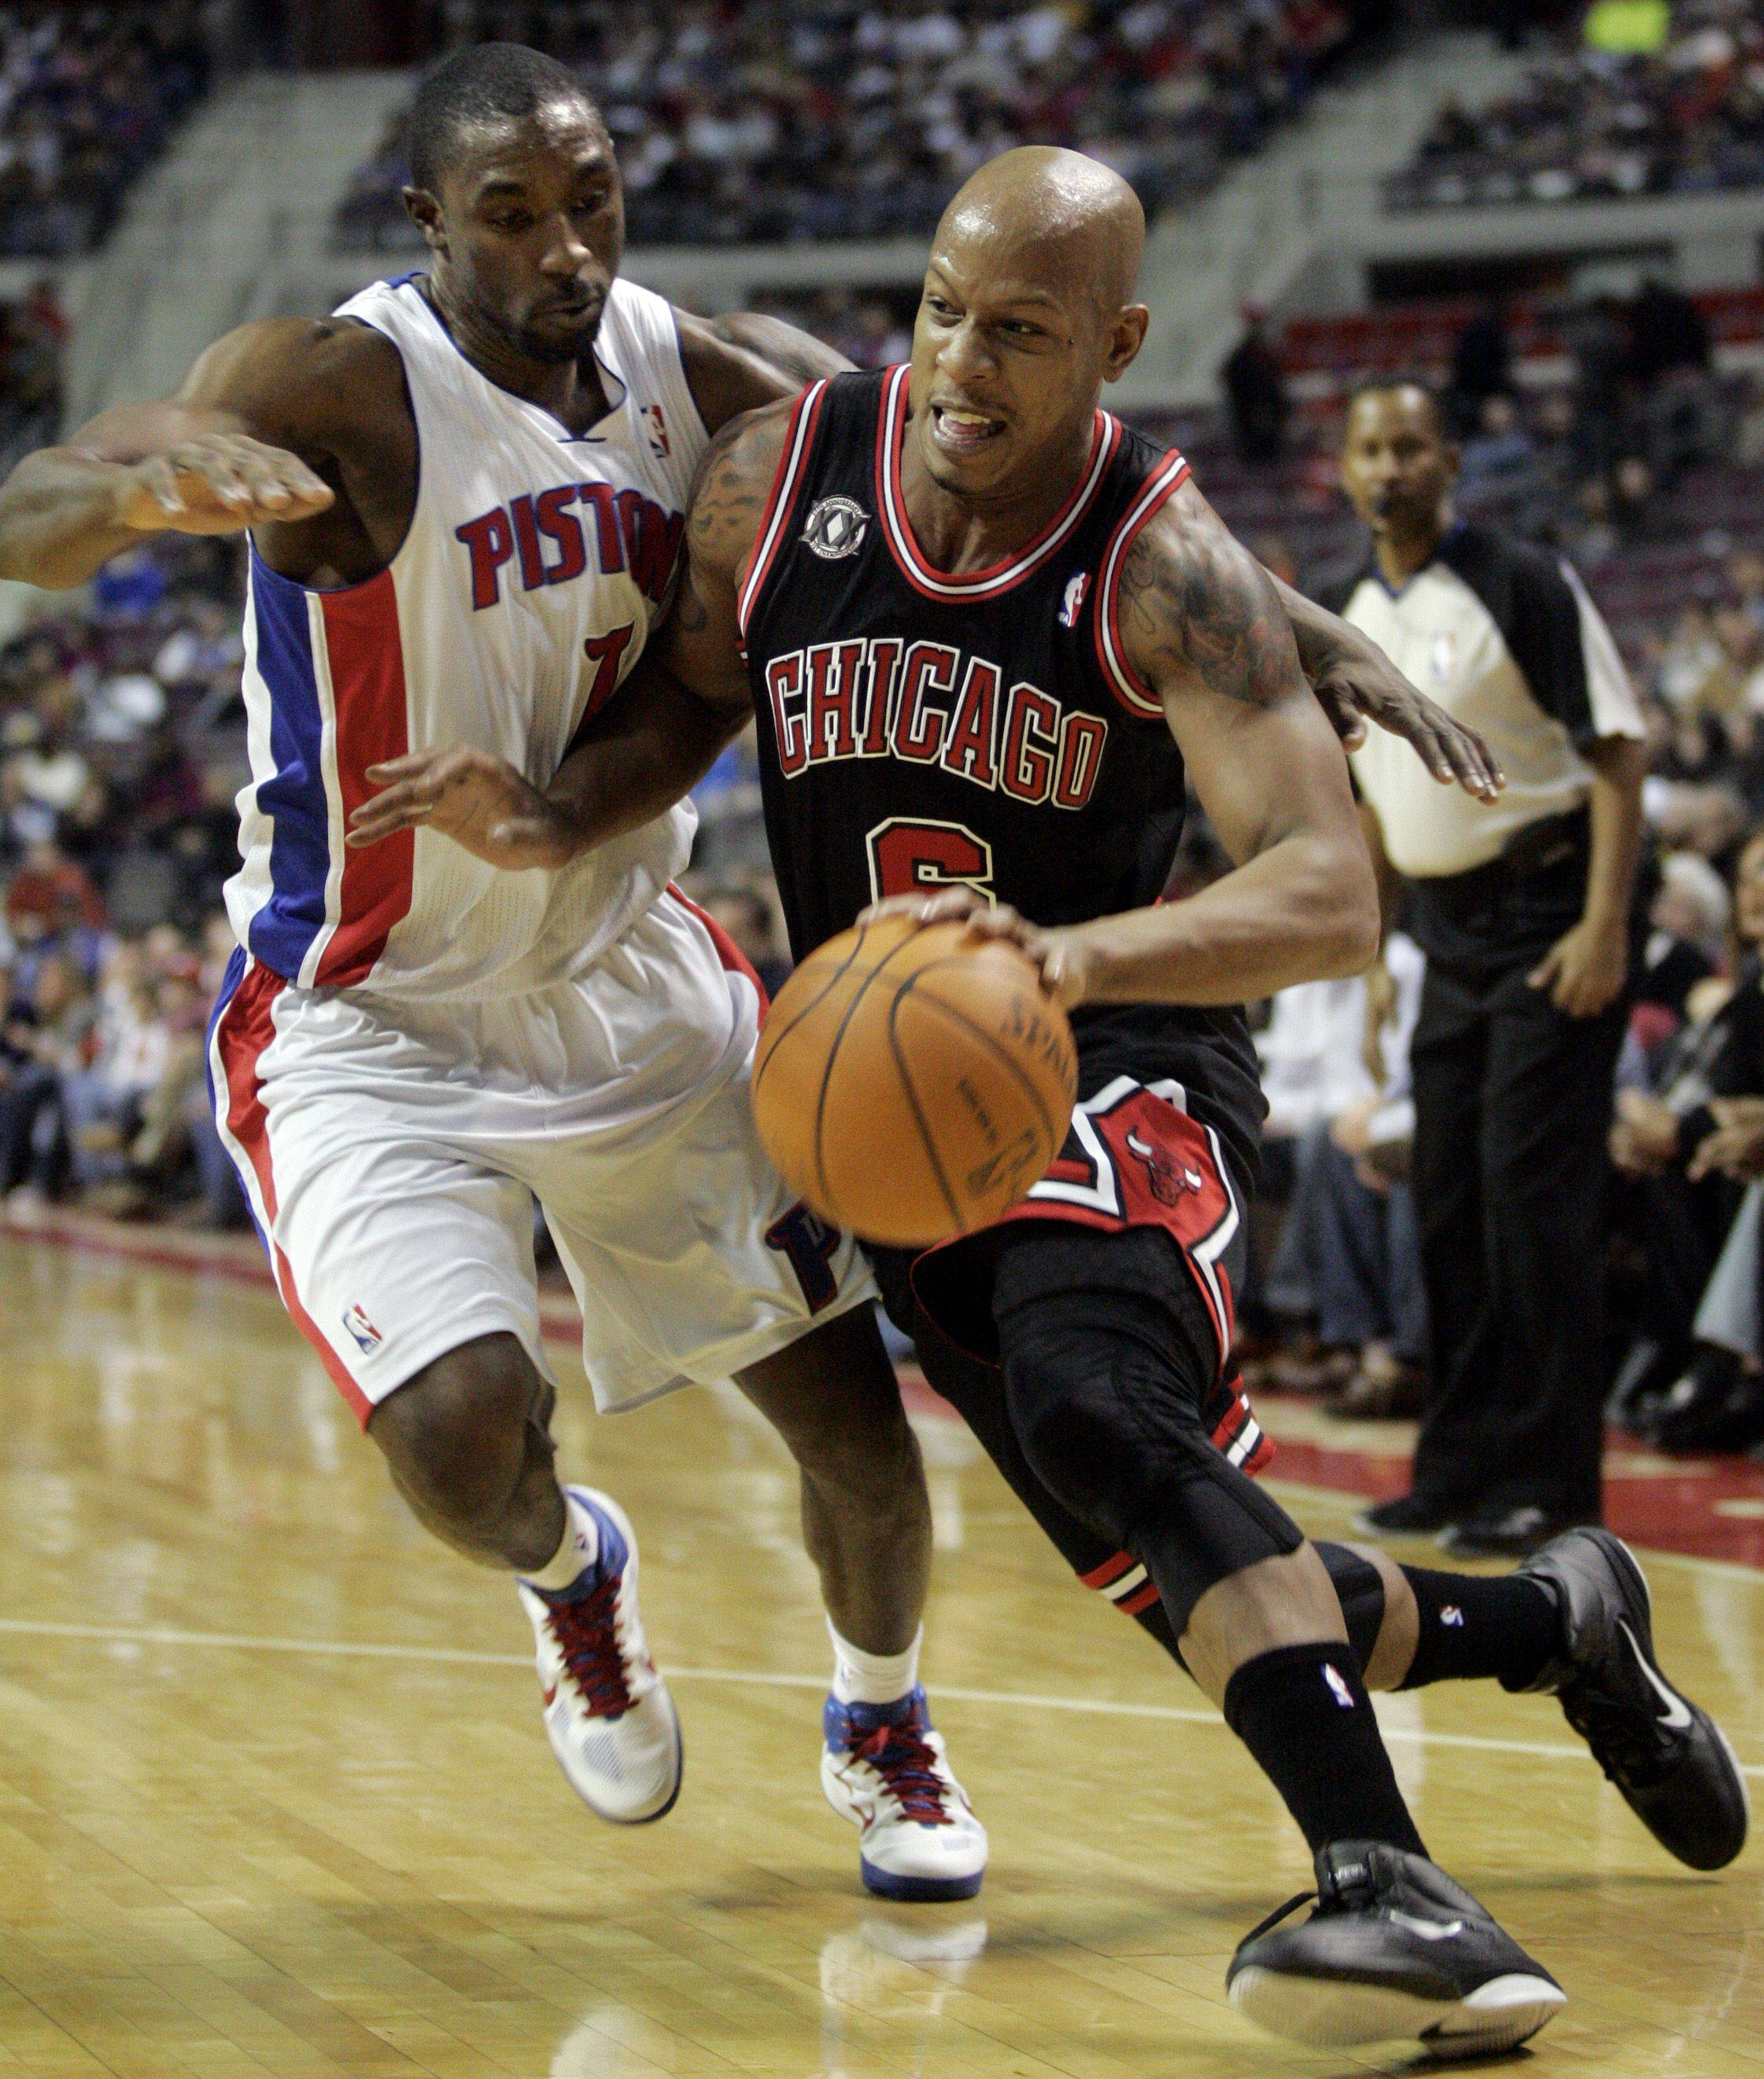 Former Bulls Ben Gordon, guarding the Bulls' Keith Bogans on Sunday, would be a boost to the Bulls' offense this season.